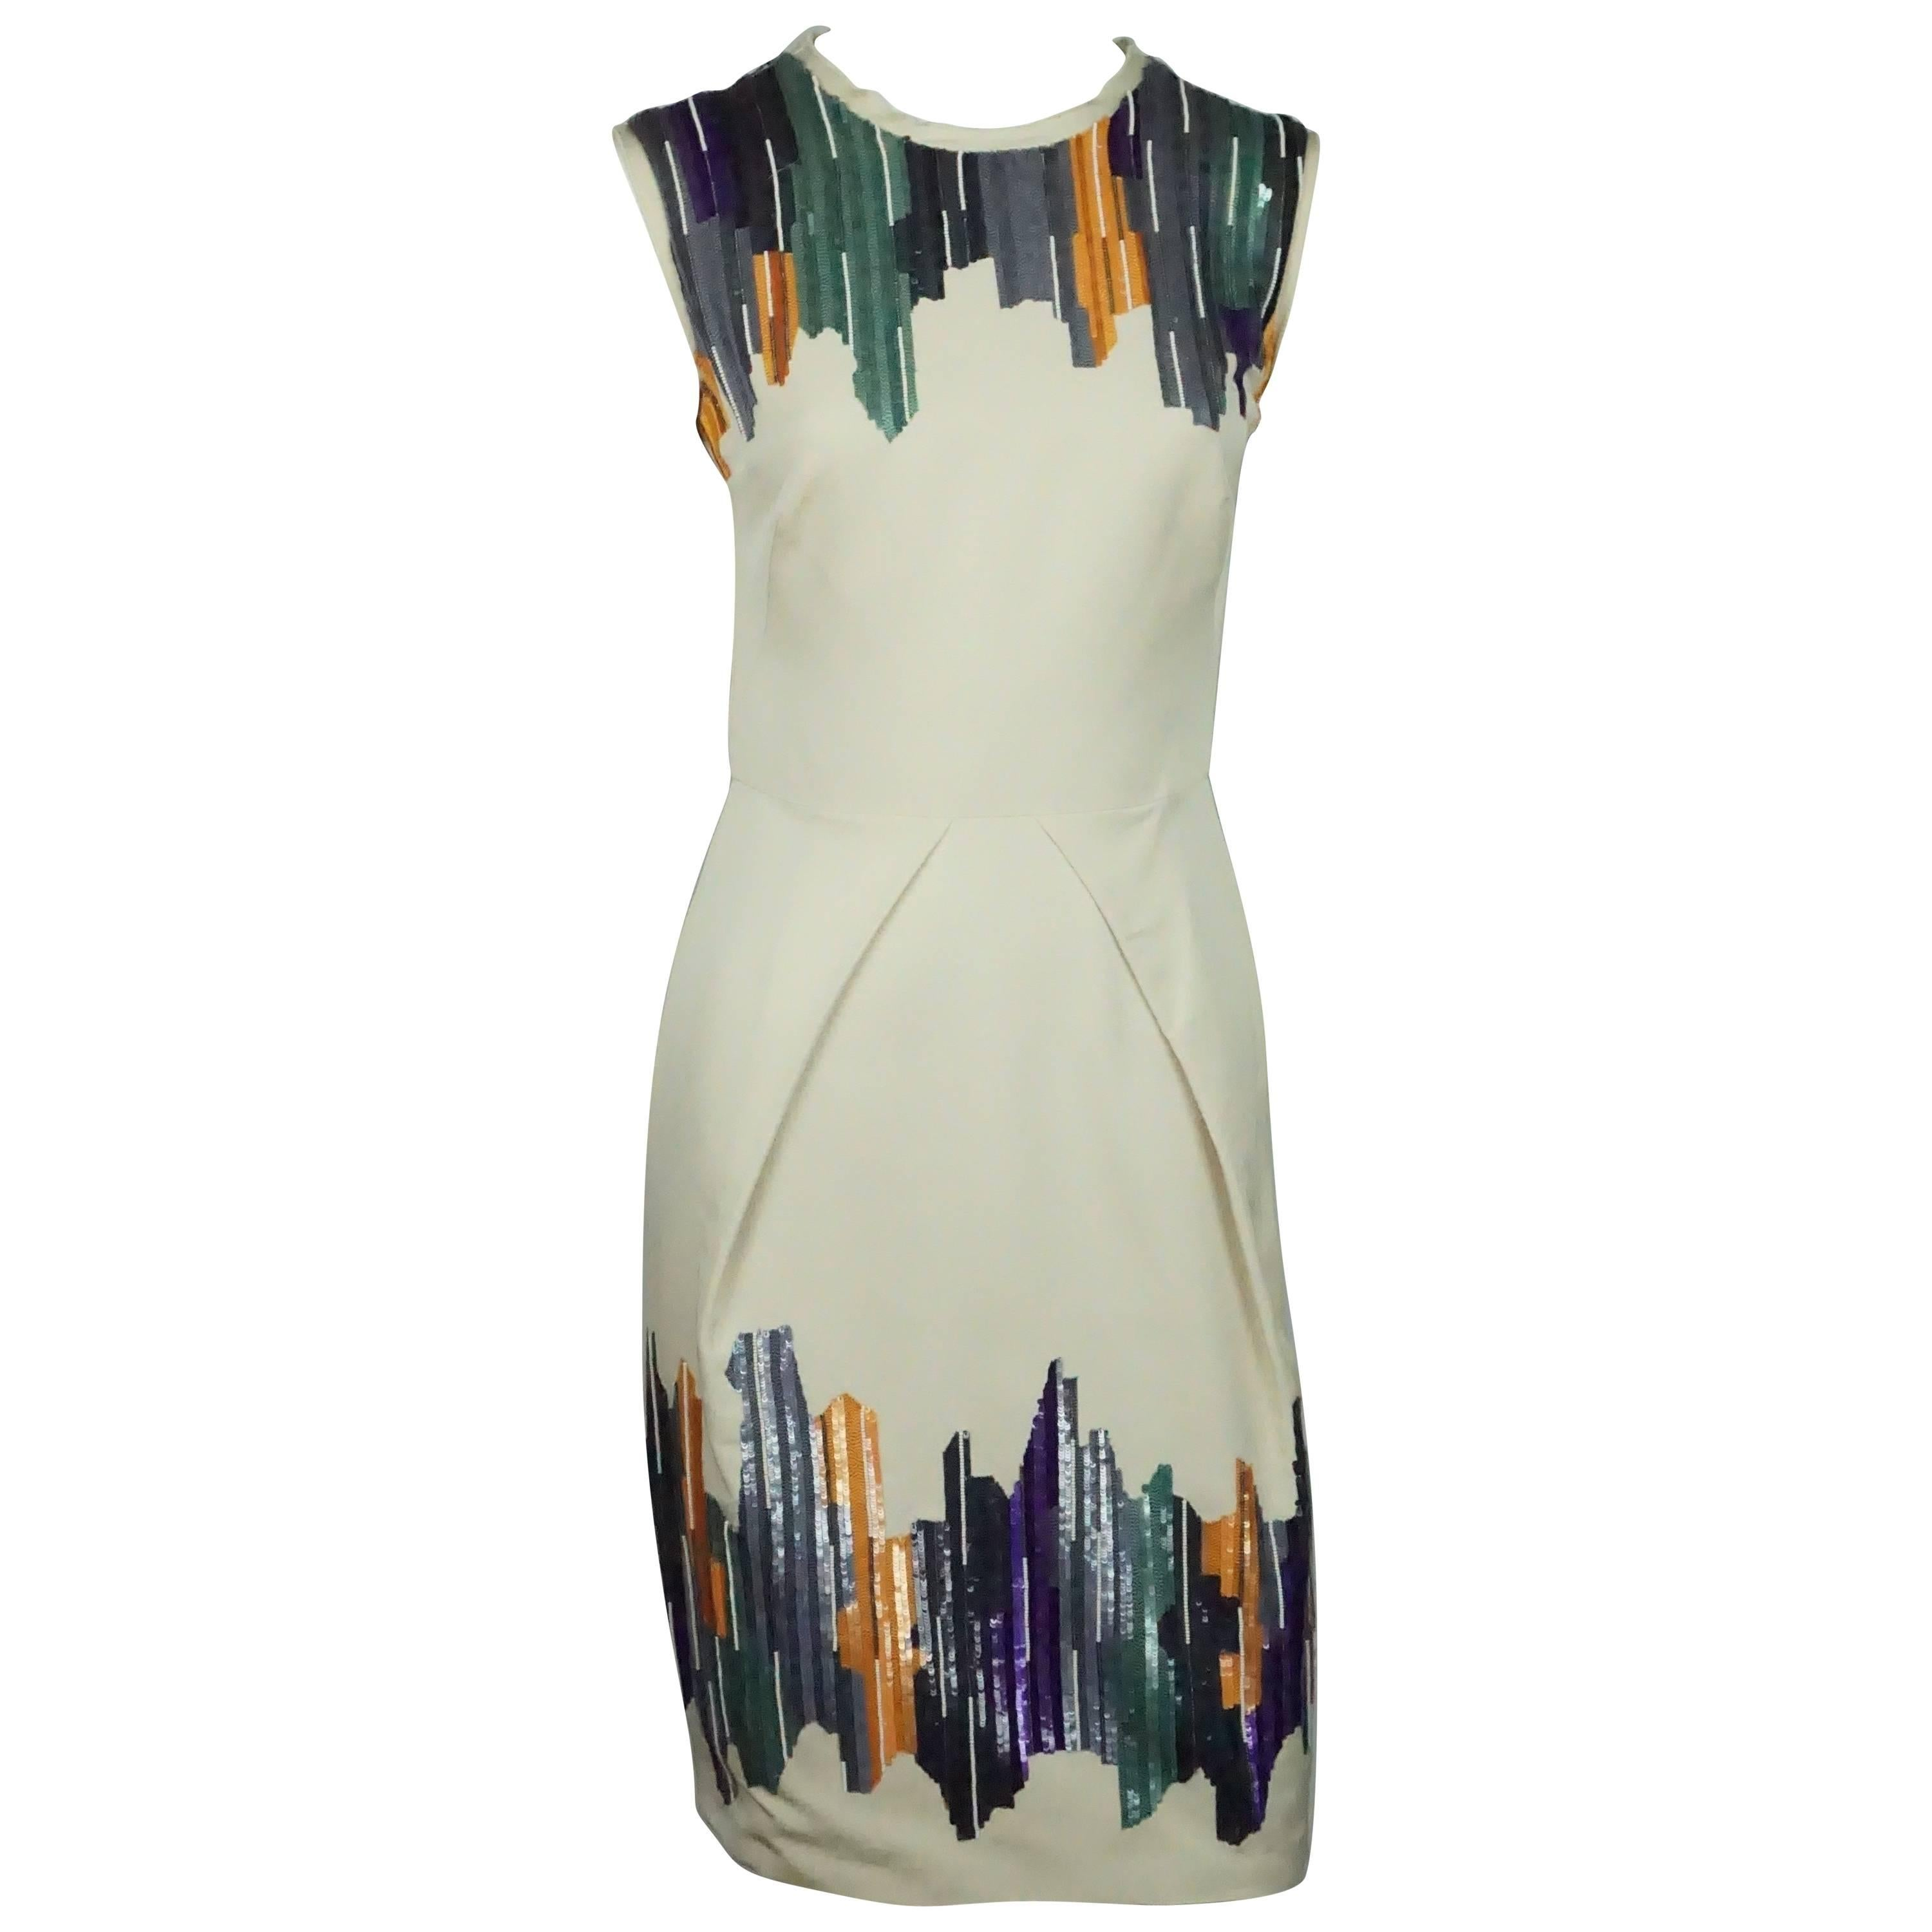 Lela Rose Beige and Multi Silk and Sequin Dress - Small